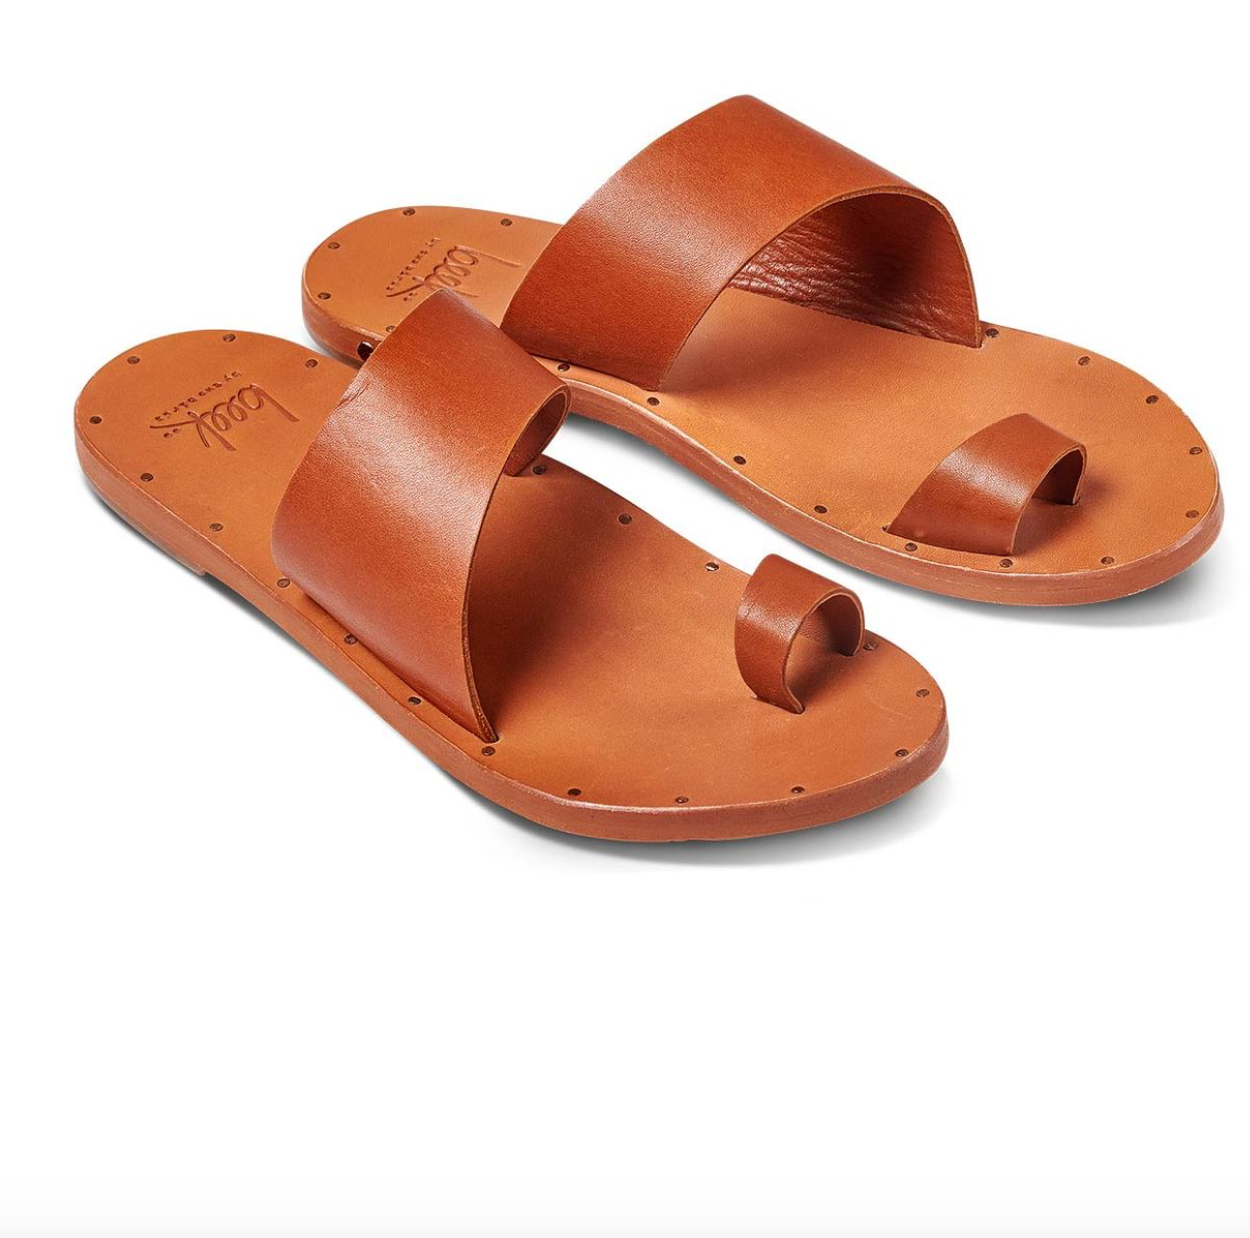 Finch Toe Ring Sandals, Tan